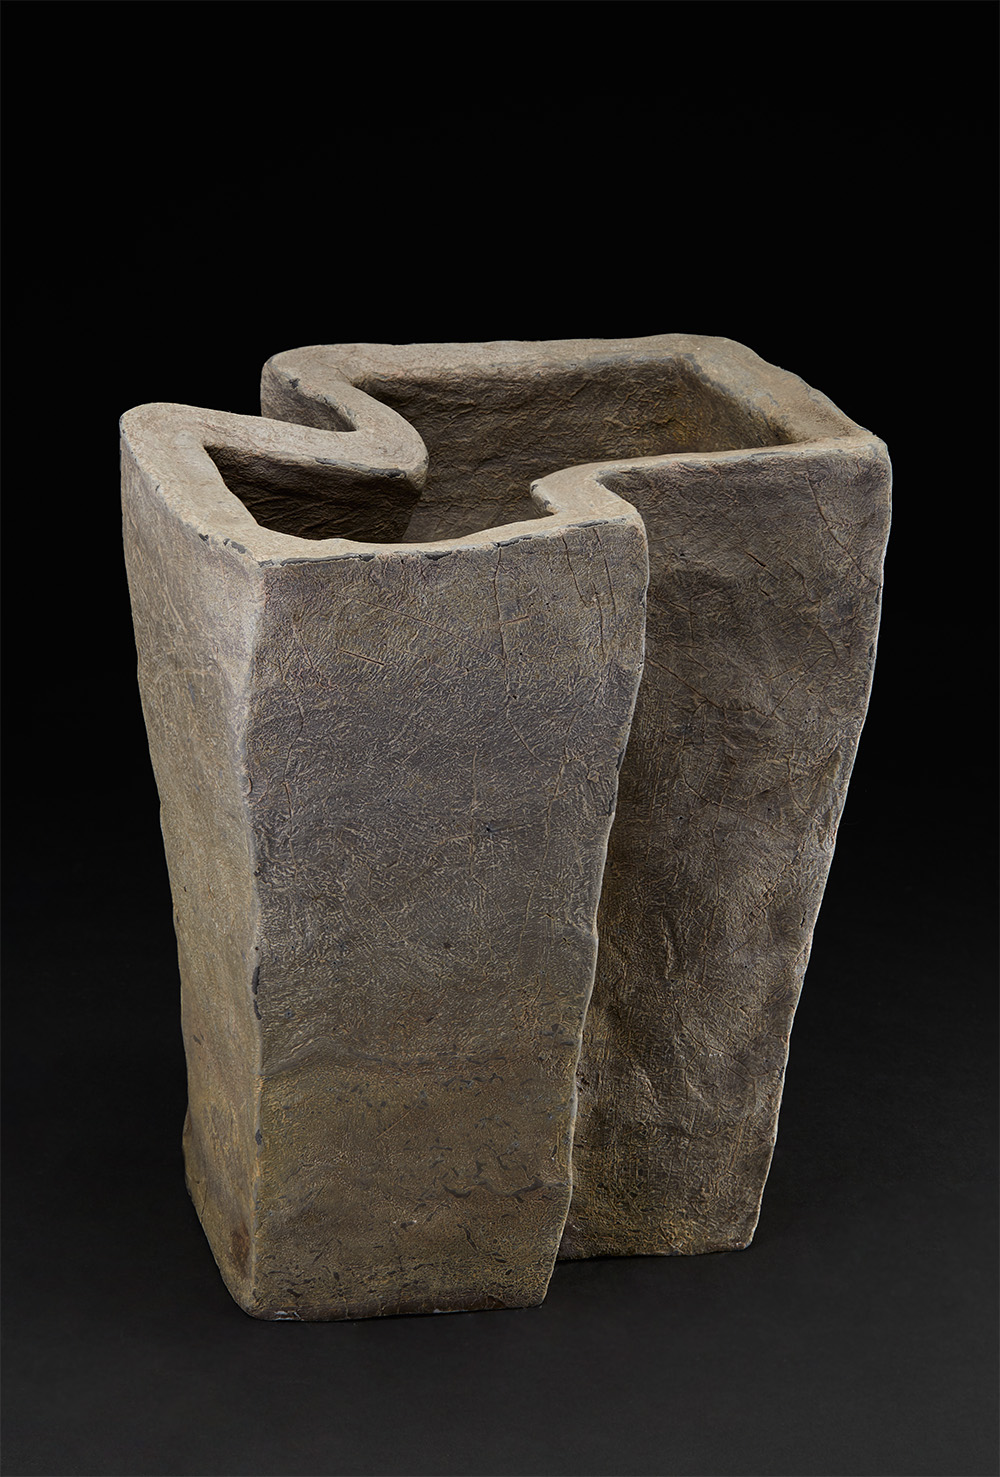 Tim Rowan  Untitled  , 2004 Fired ceramic 10 x 11 x 8 inches 25.4 x 27.9 x 20.3 cm TR 7